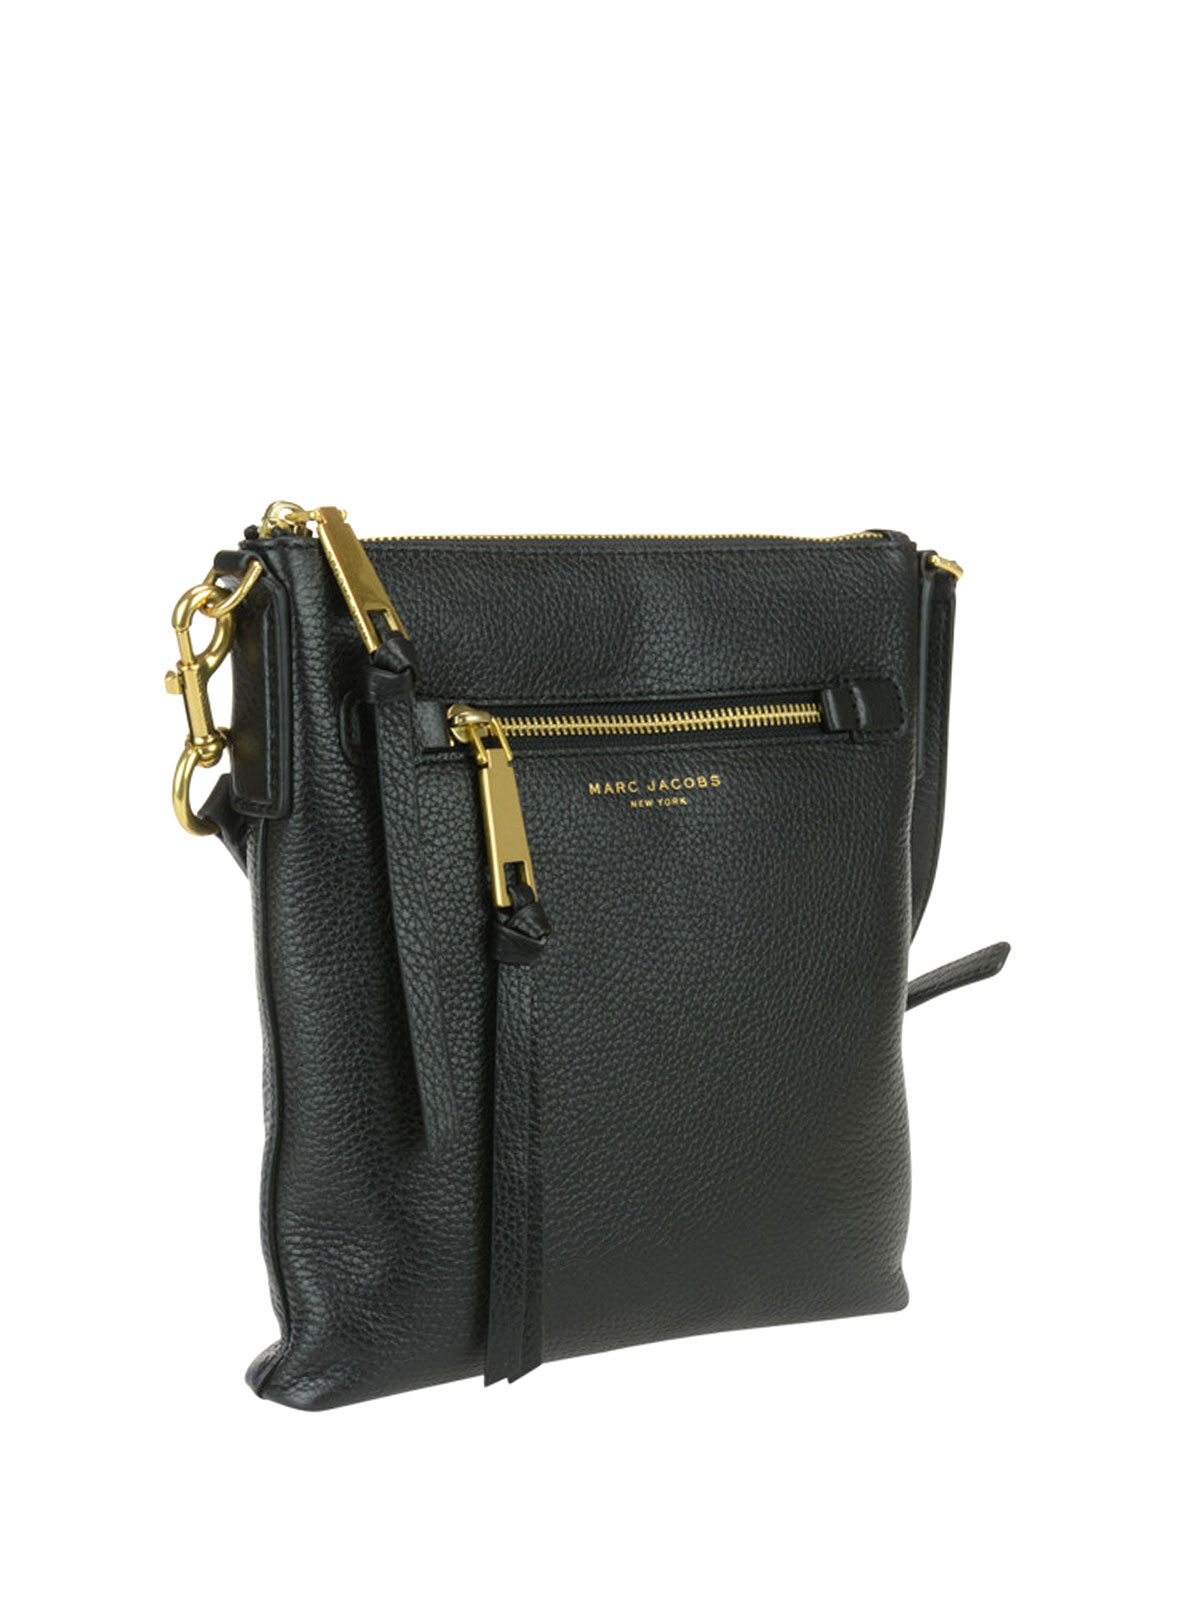 Marc Jacobs Hammered leather cross body bag sCU5S17